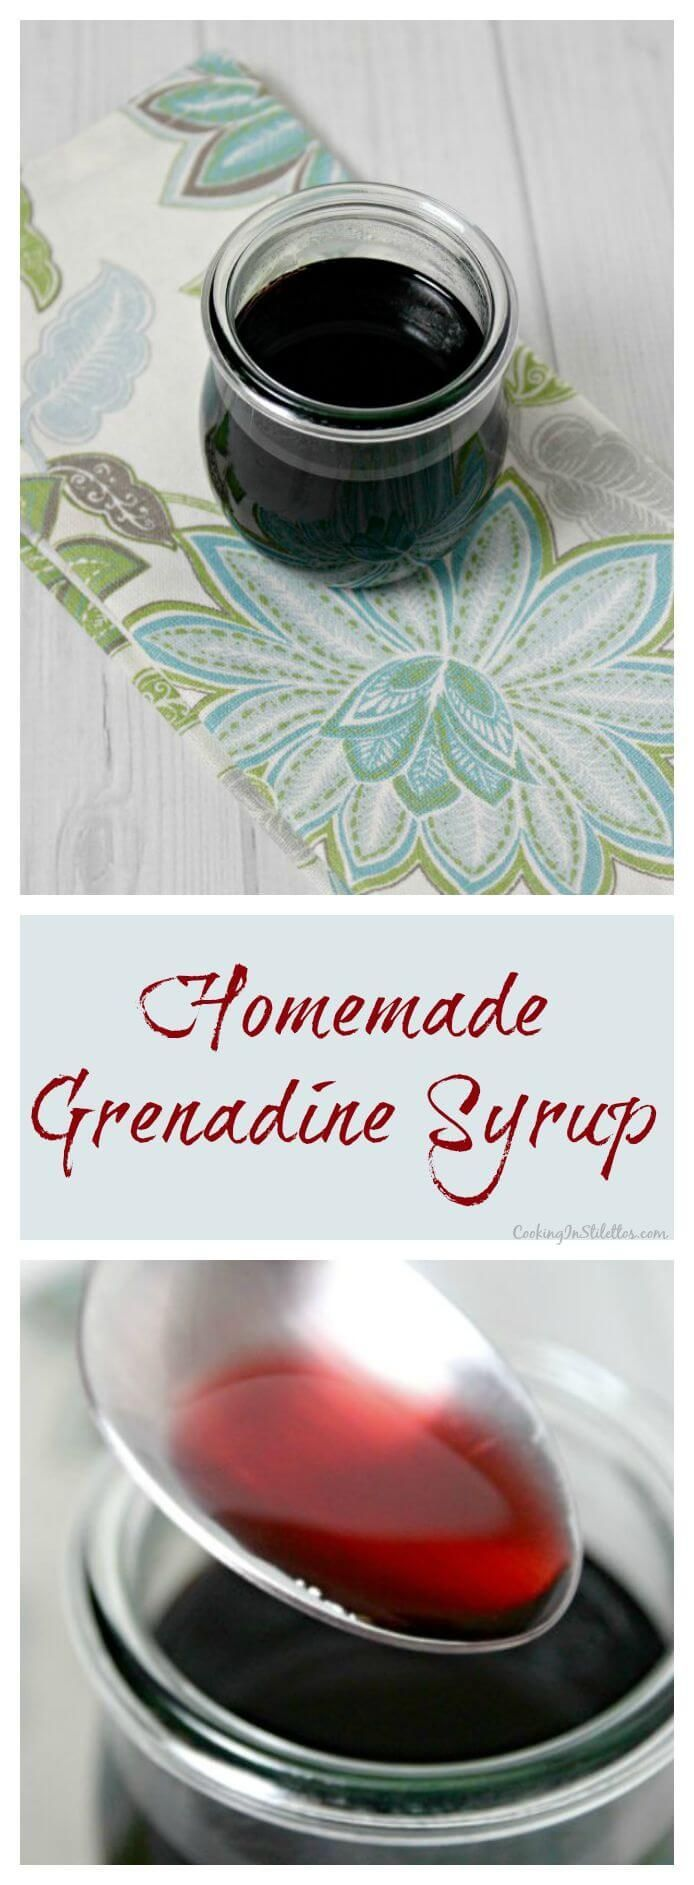 Homemade Grenadine Syrup[/b | Recipe | Homemade, Cooking and ...